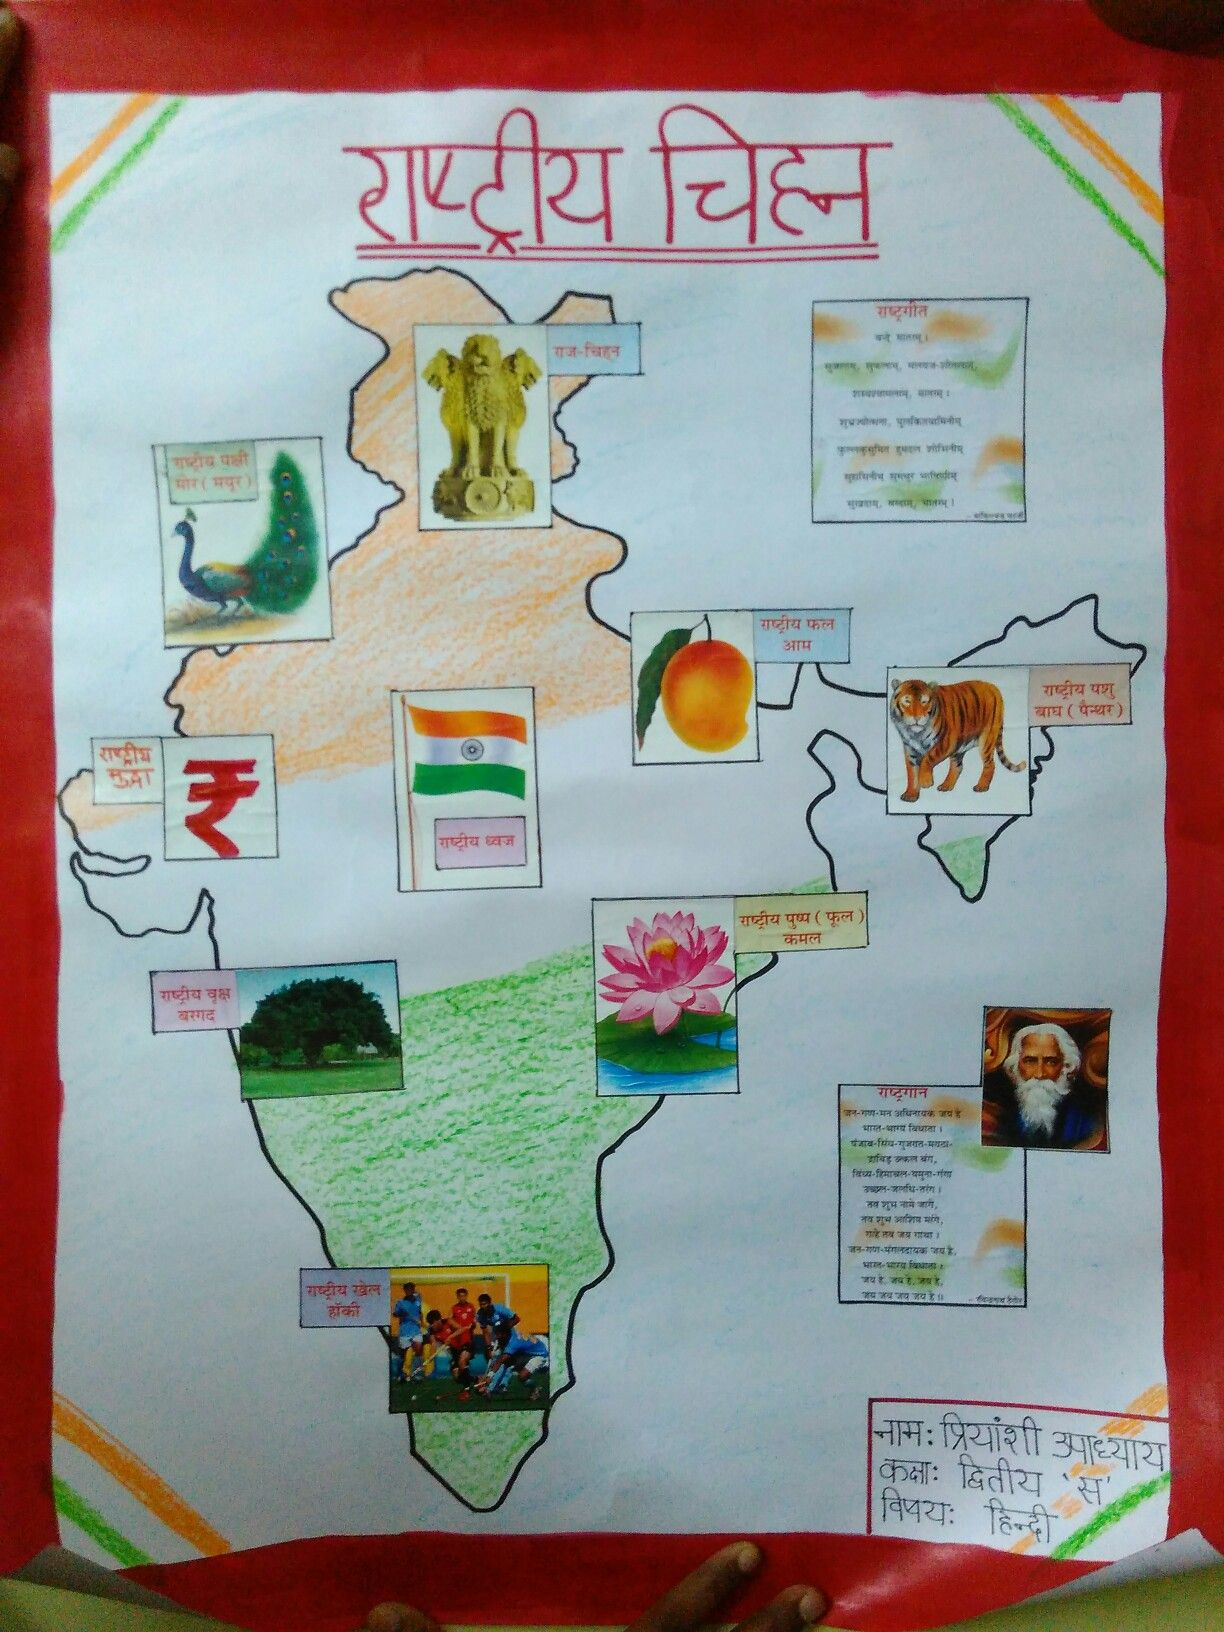 National symbols of india my own creation pinterest national symbols of india biocorpaavc Images